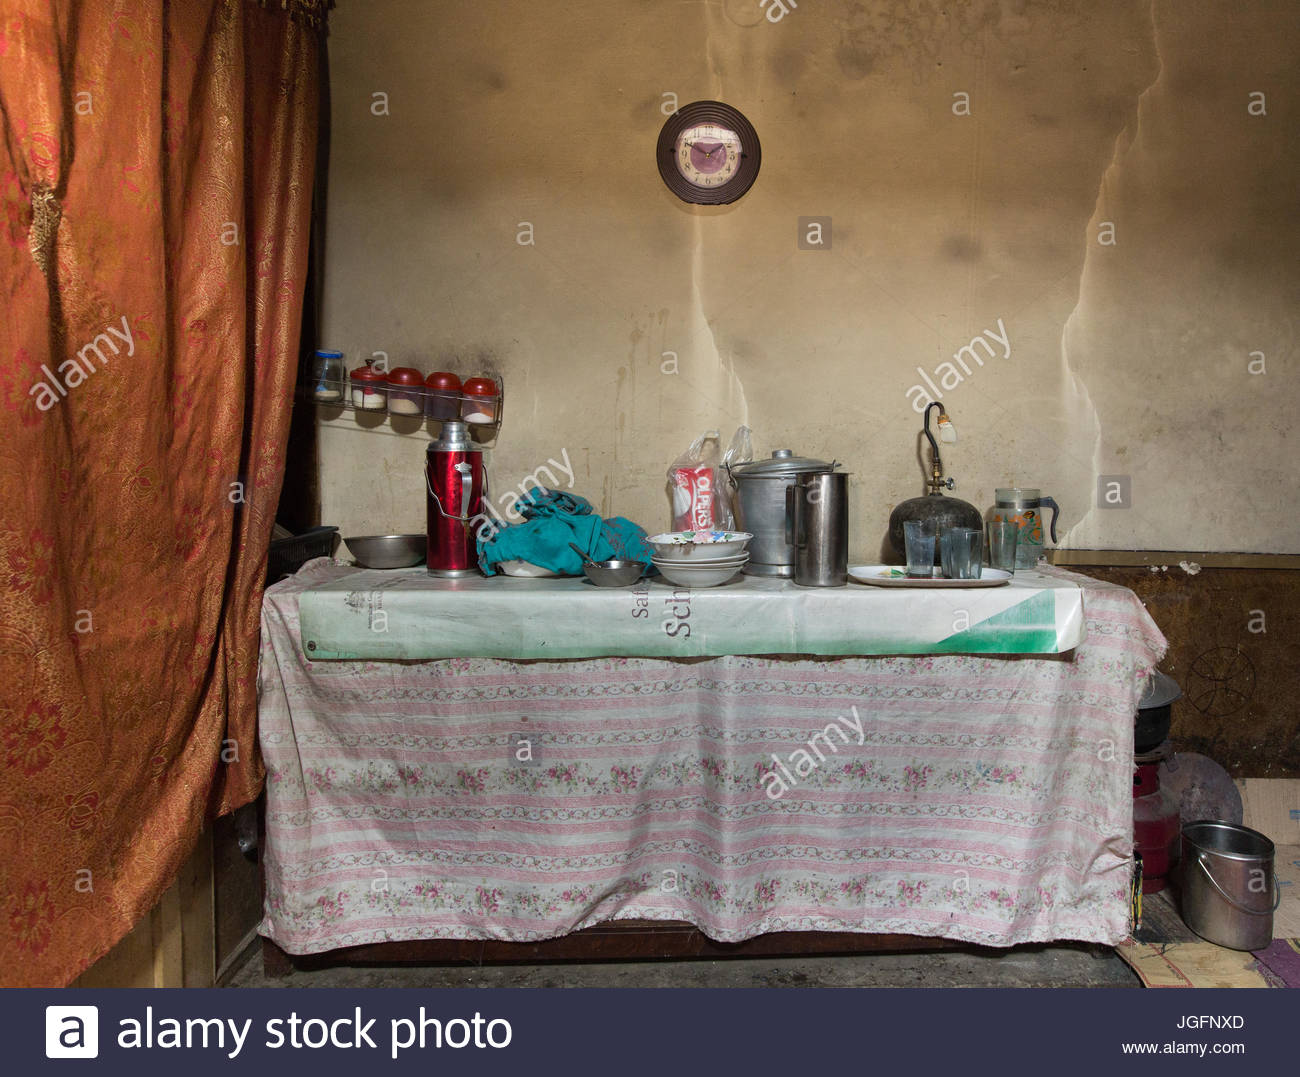 A kitchen in a home in the Hunza Region. - Stock Image